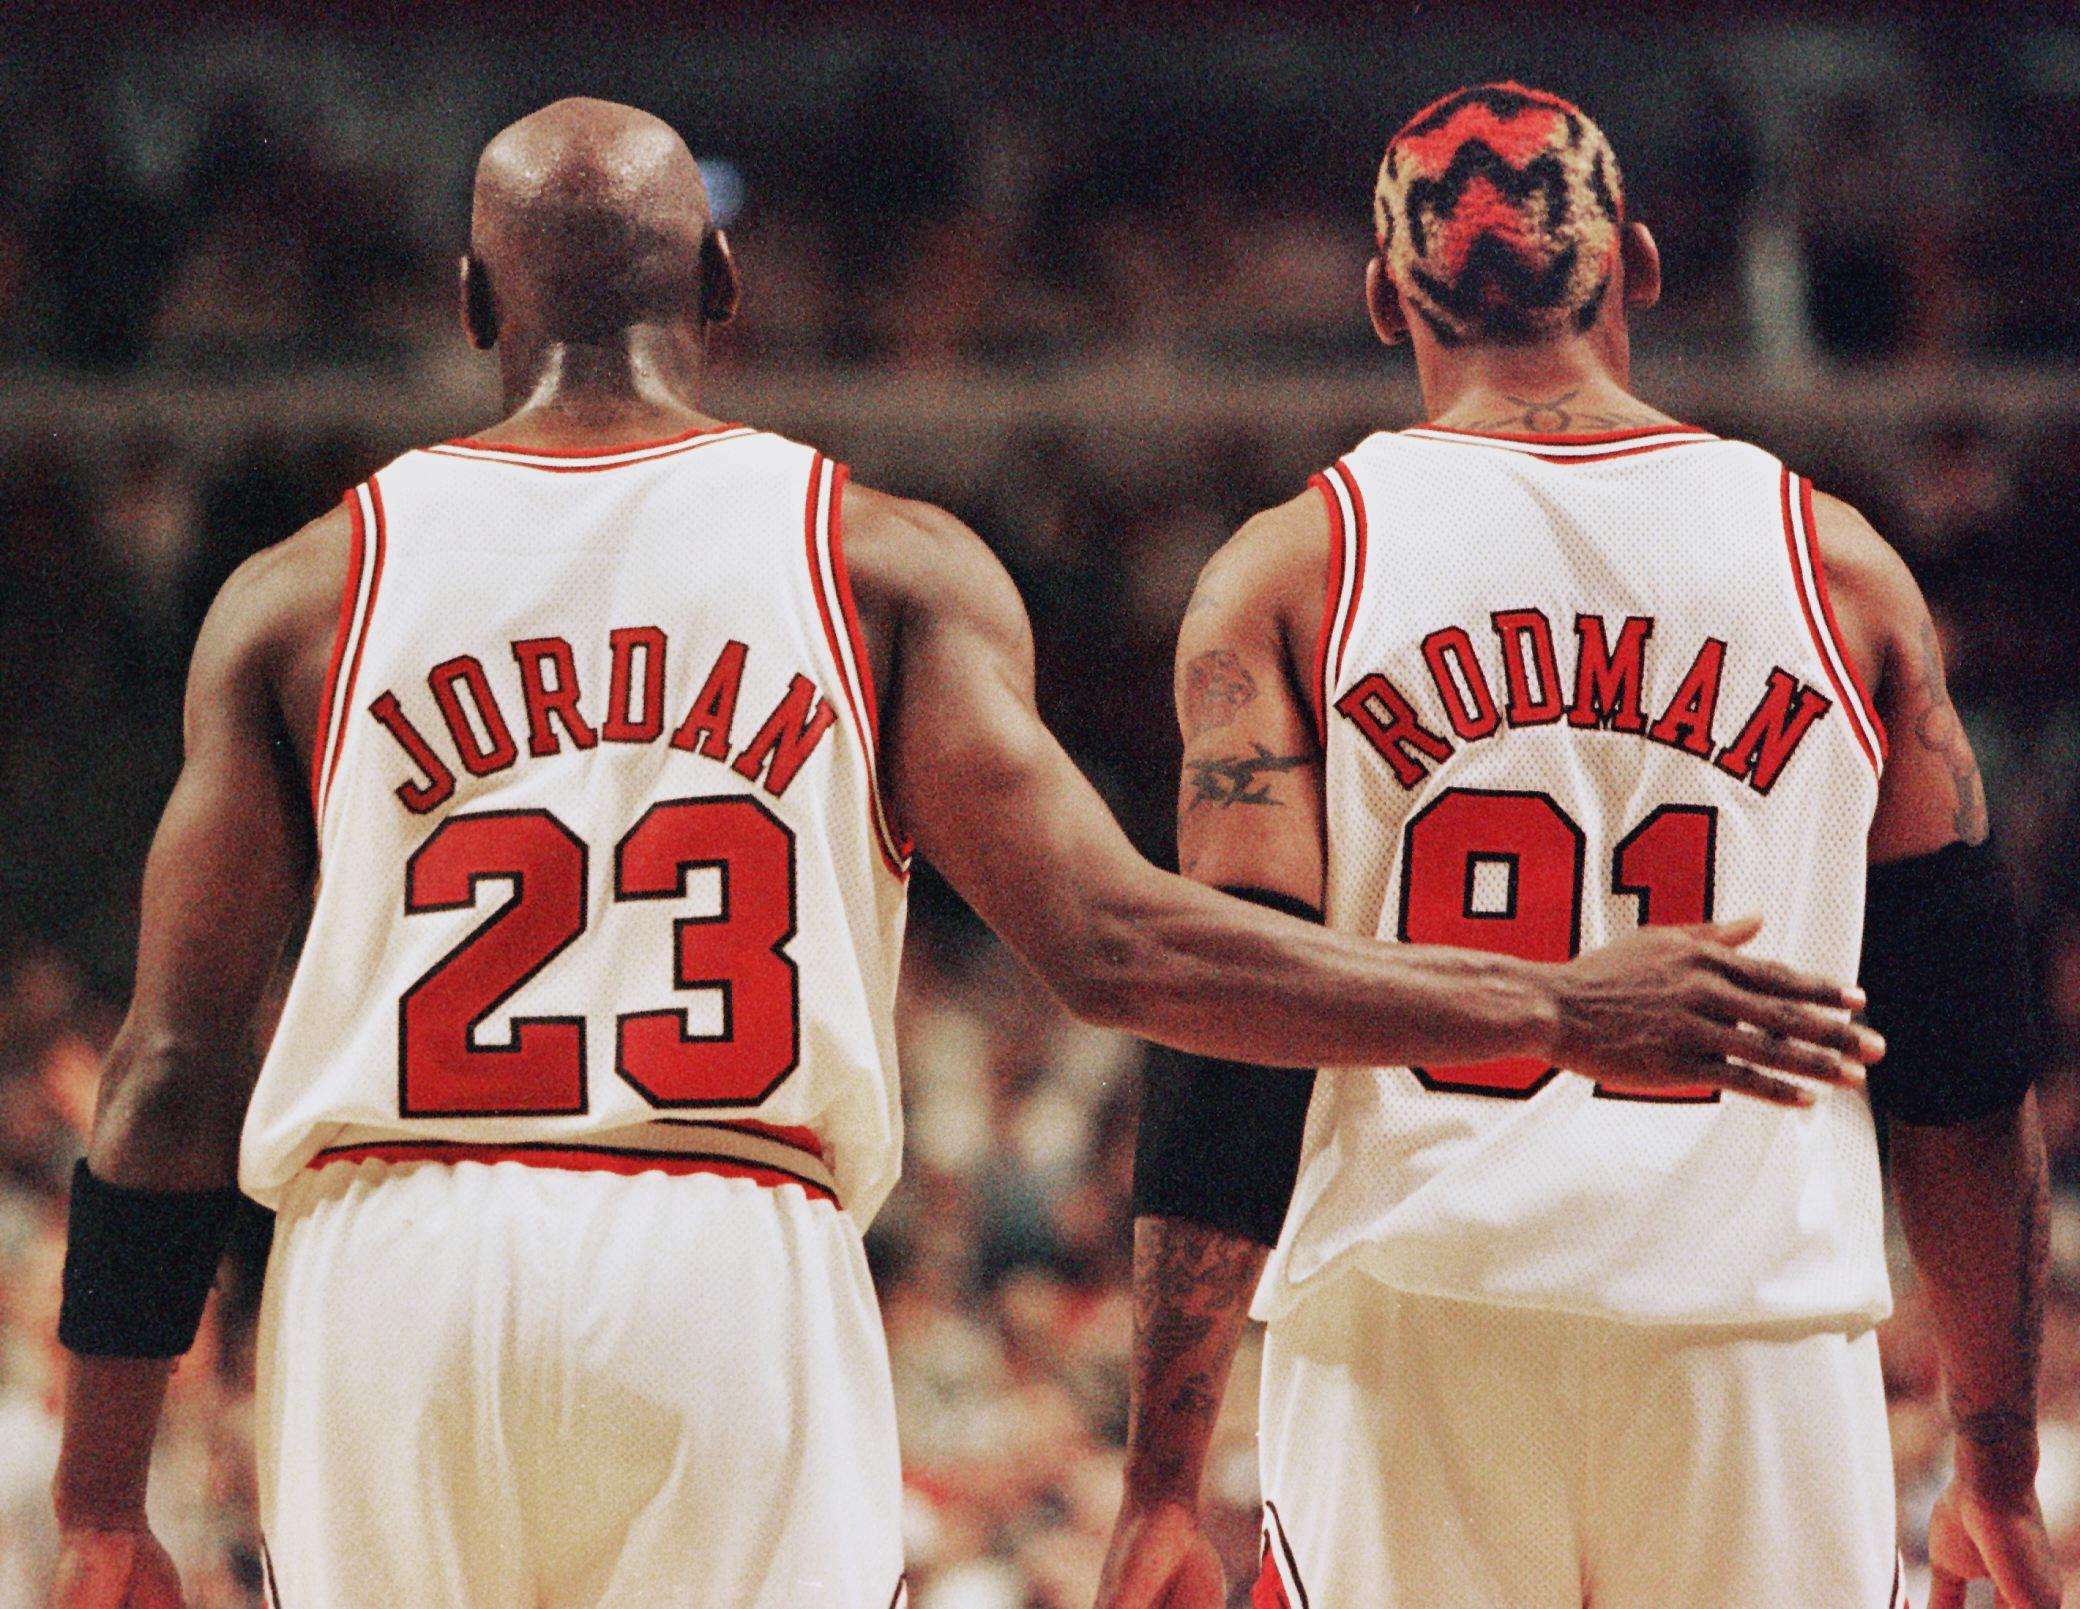 Michael Jordan (L) pats Dennis Rodman, both of the Chicago Bulls, on the back after Rodman was called for a technical foul